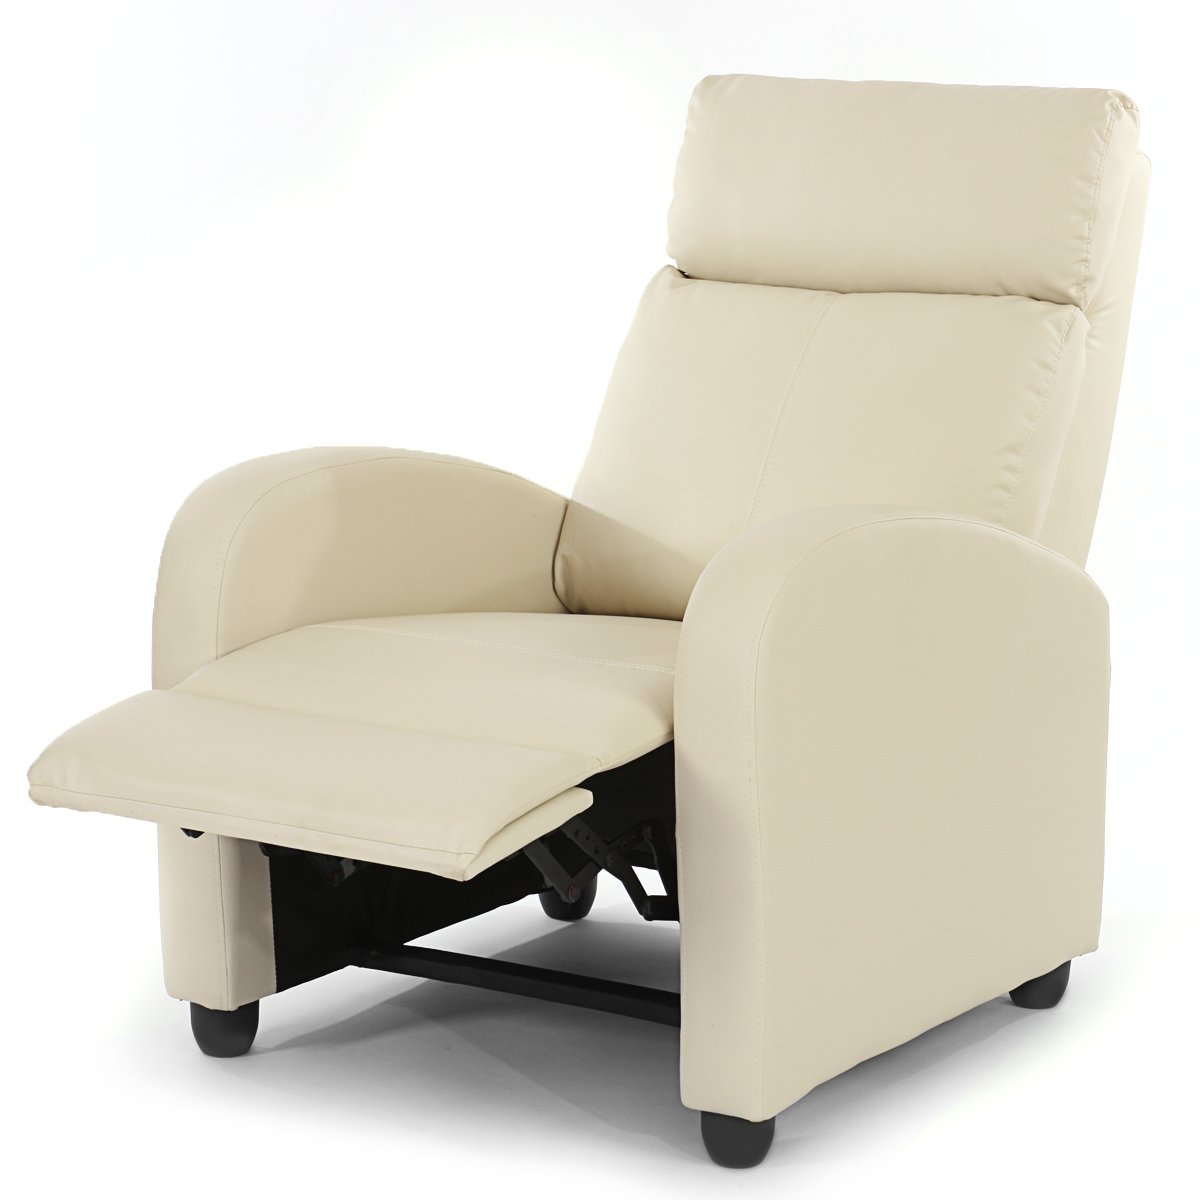 Sill n relax reclinable denver en piel color crema for Sillon reclinable